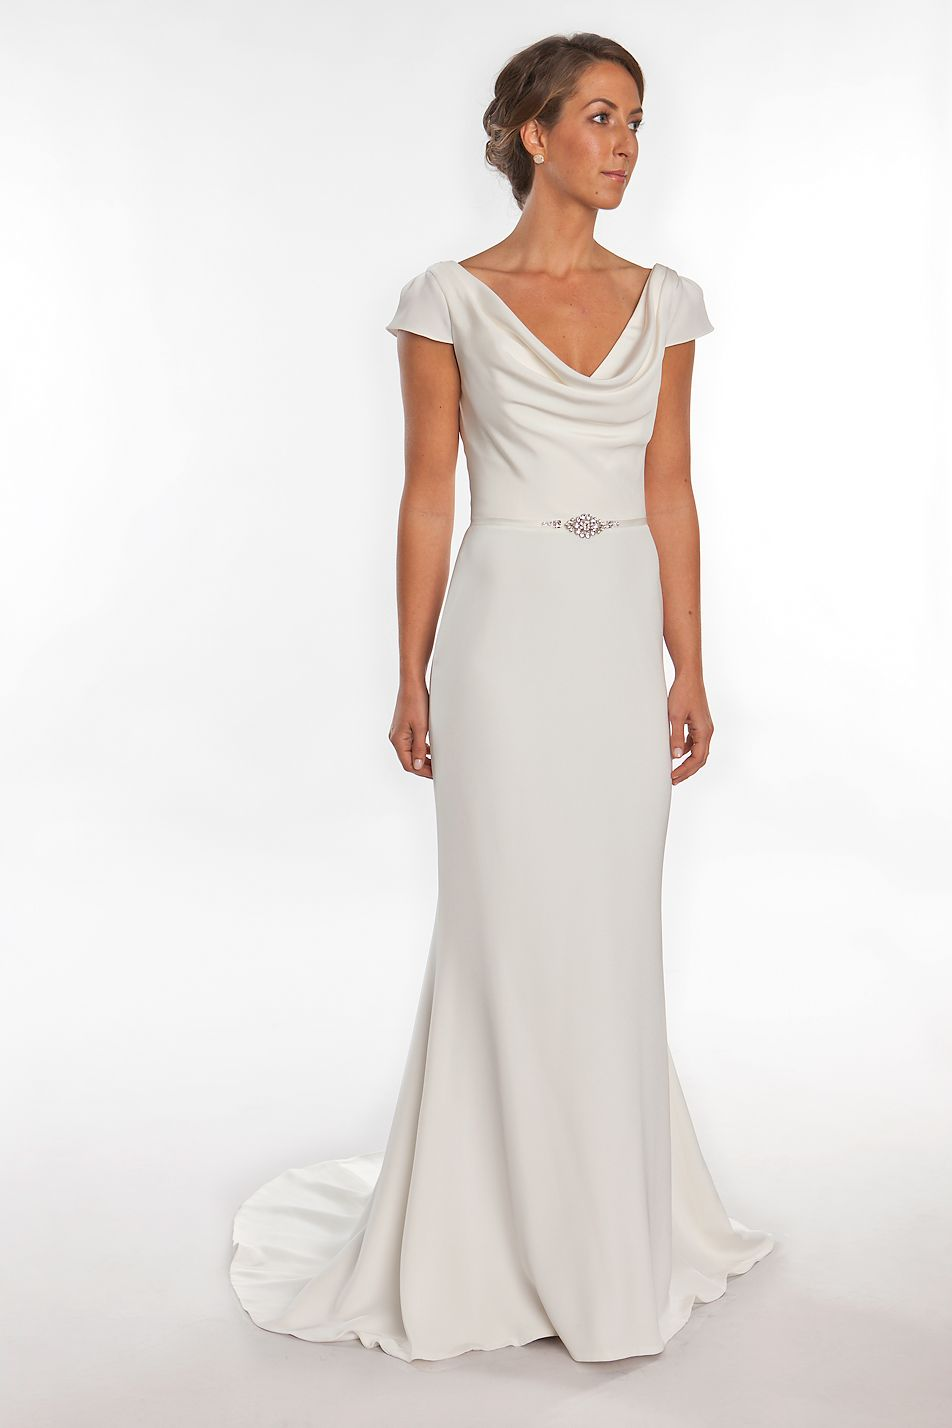 Charlotte Cowl Neck Wedding Dress With Cap Sleeves By